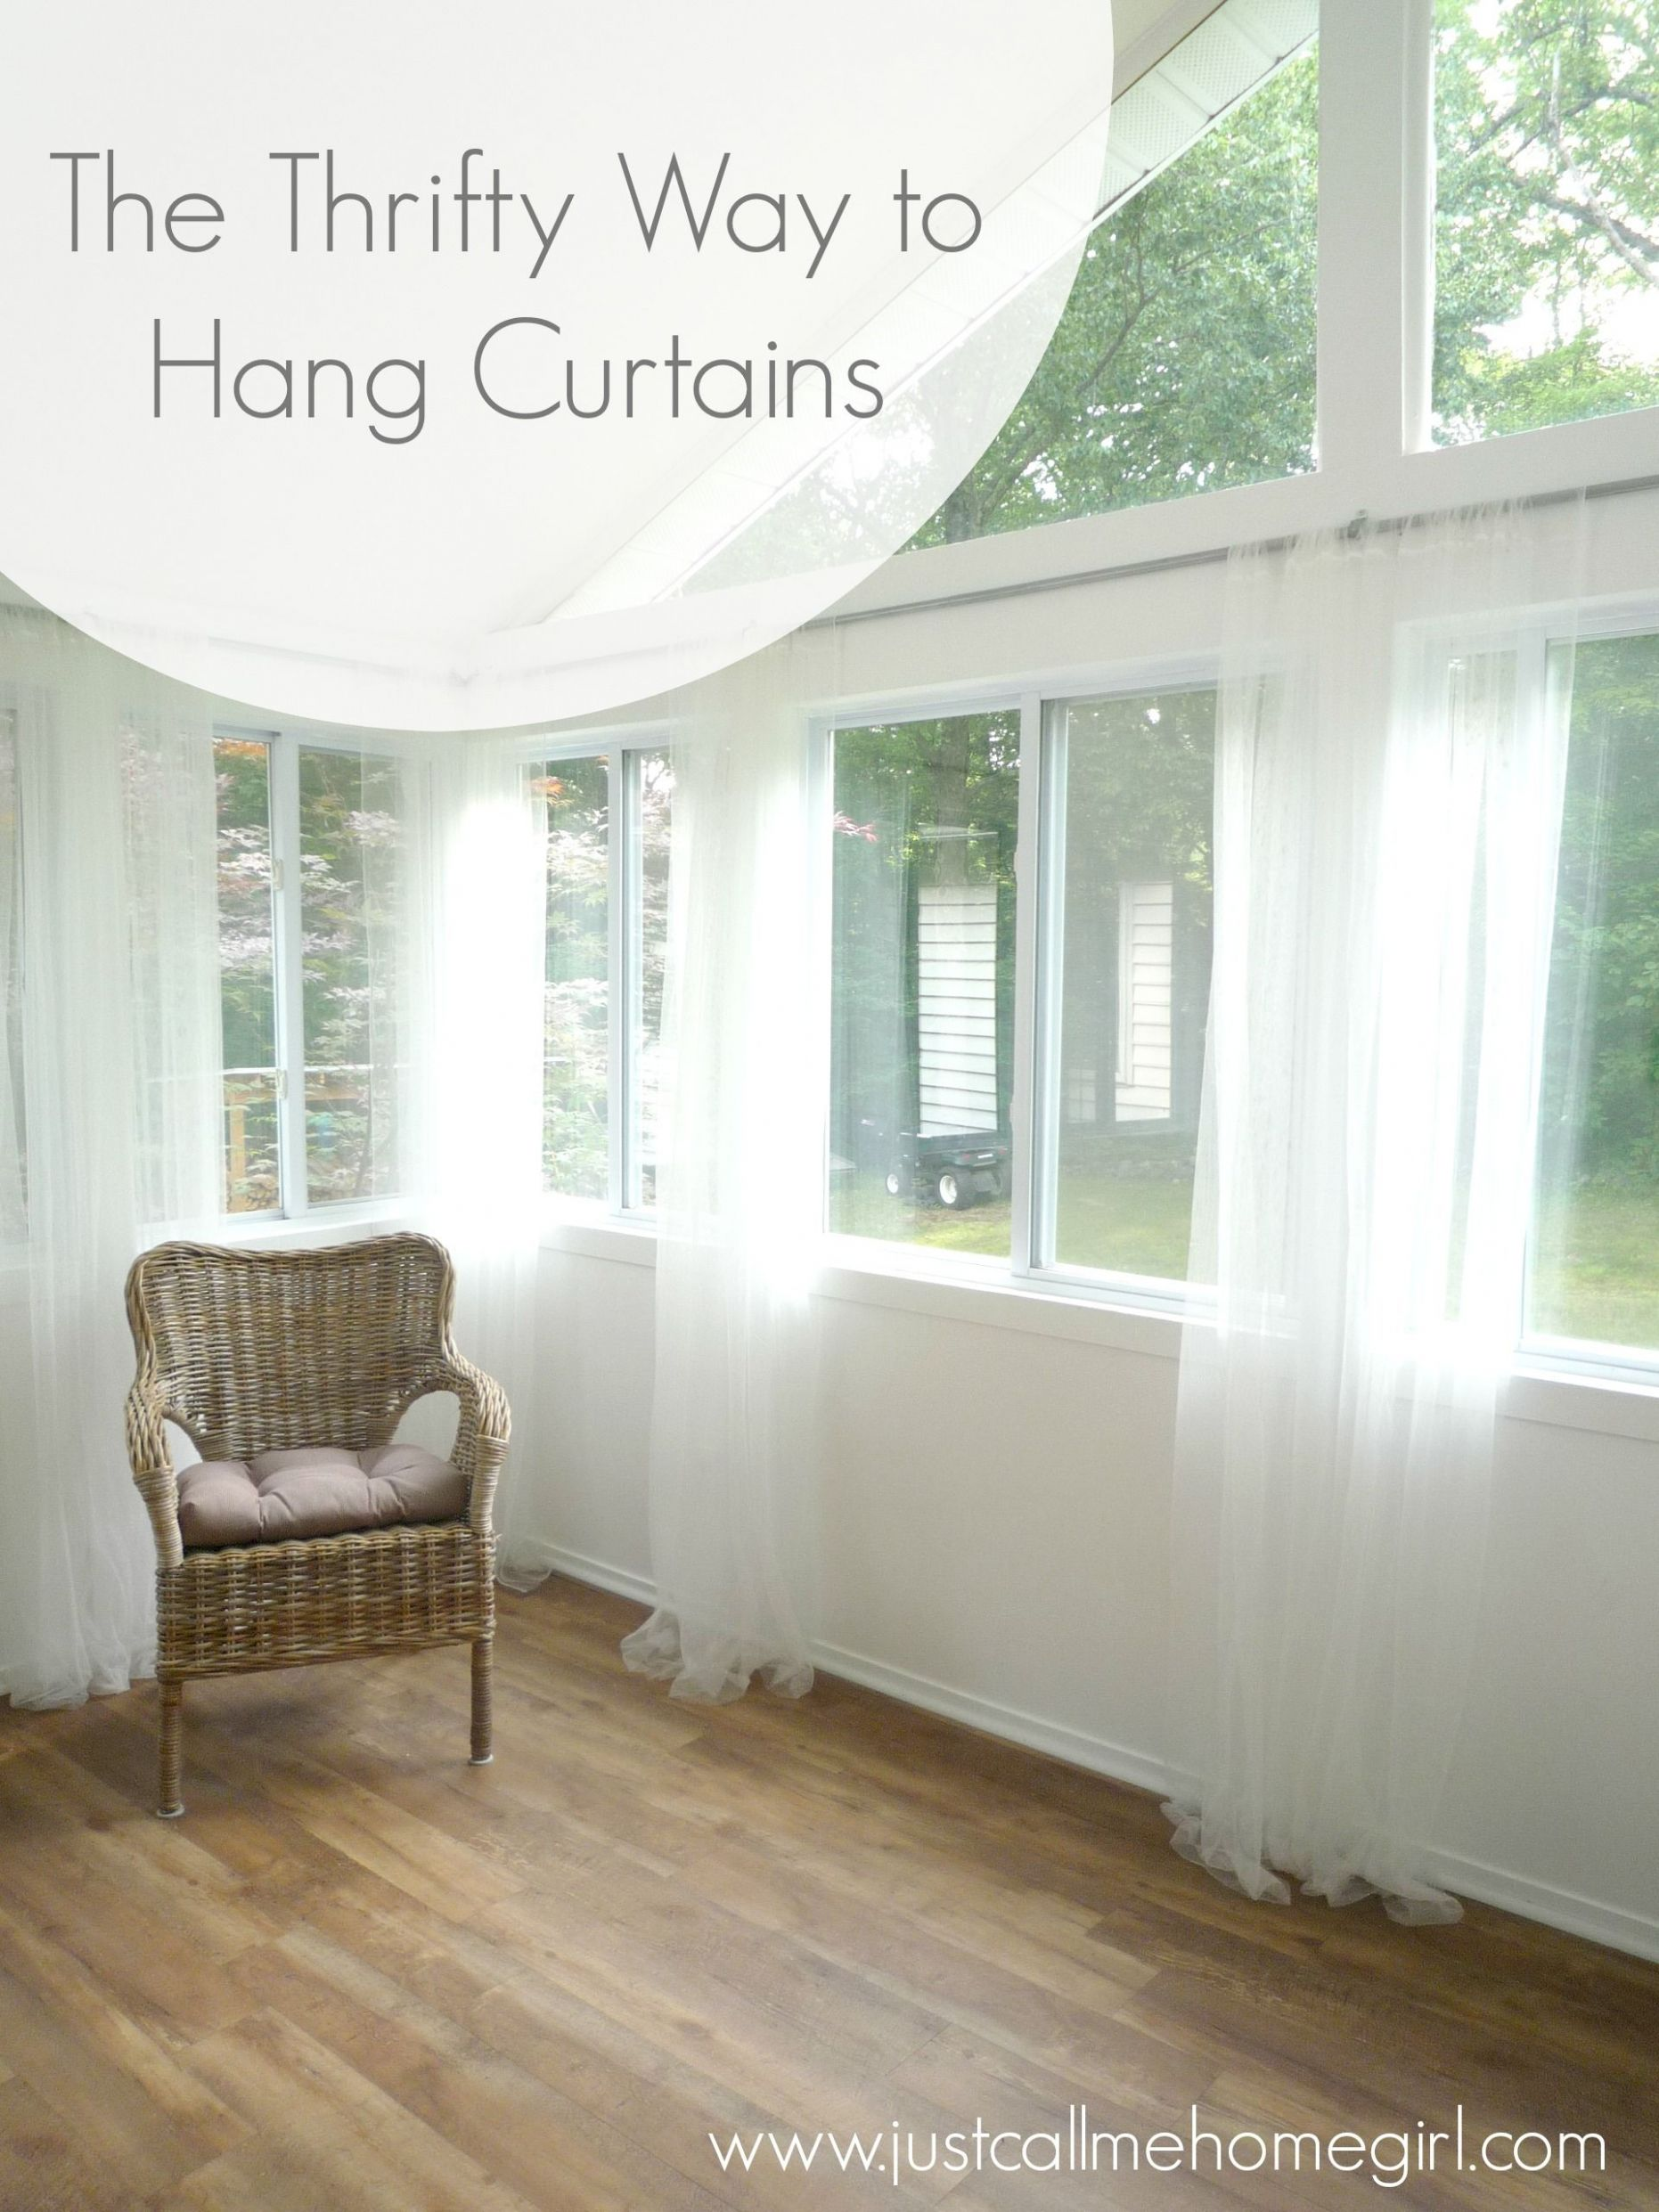 The Thrifty Way to Hang Curtains | Hanging curtains, Sunroom ...